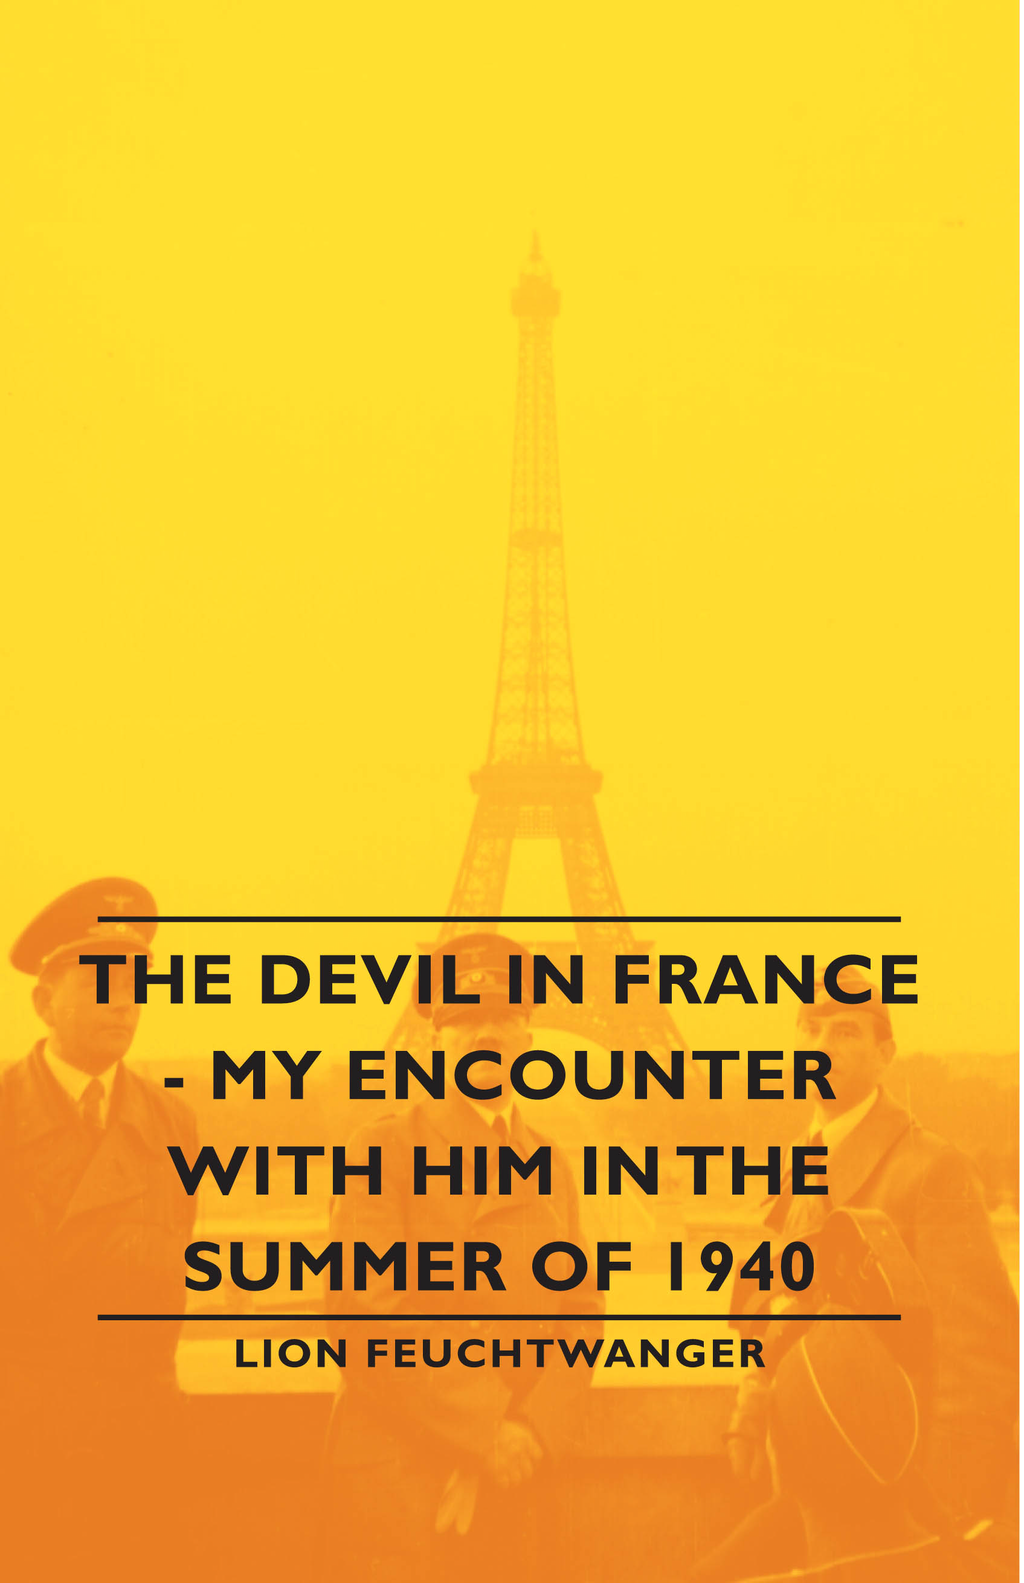 The Devil In France - My Encounter With Him In The Summer Of 1940